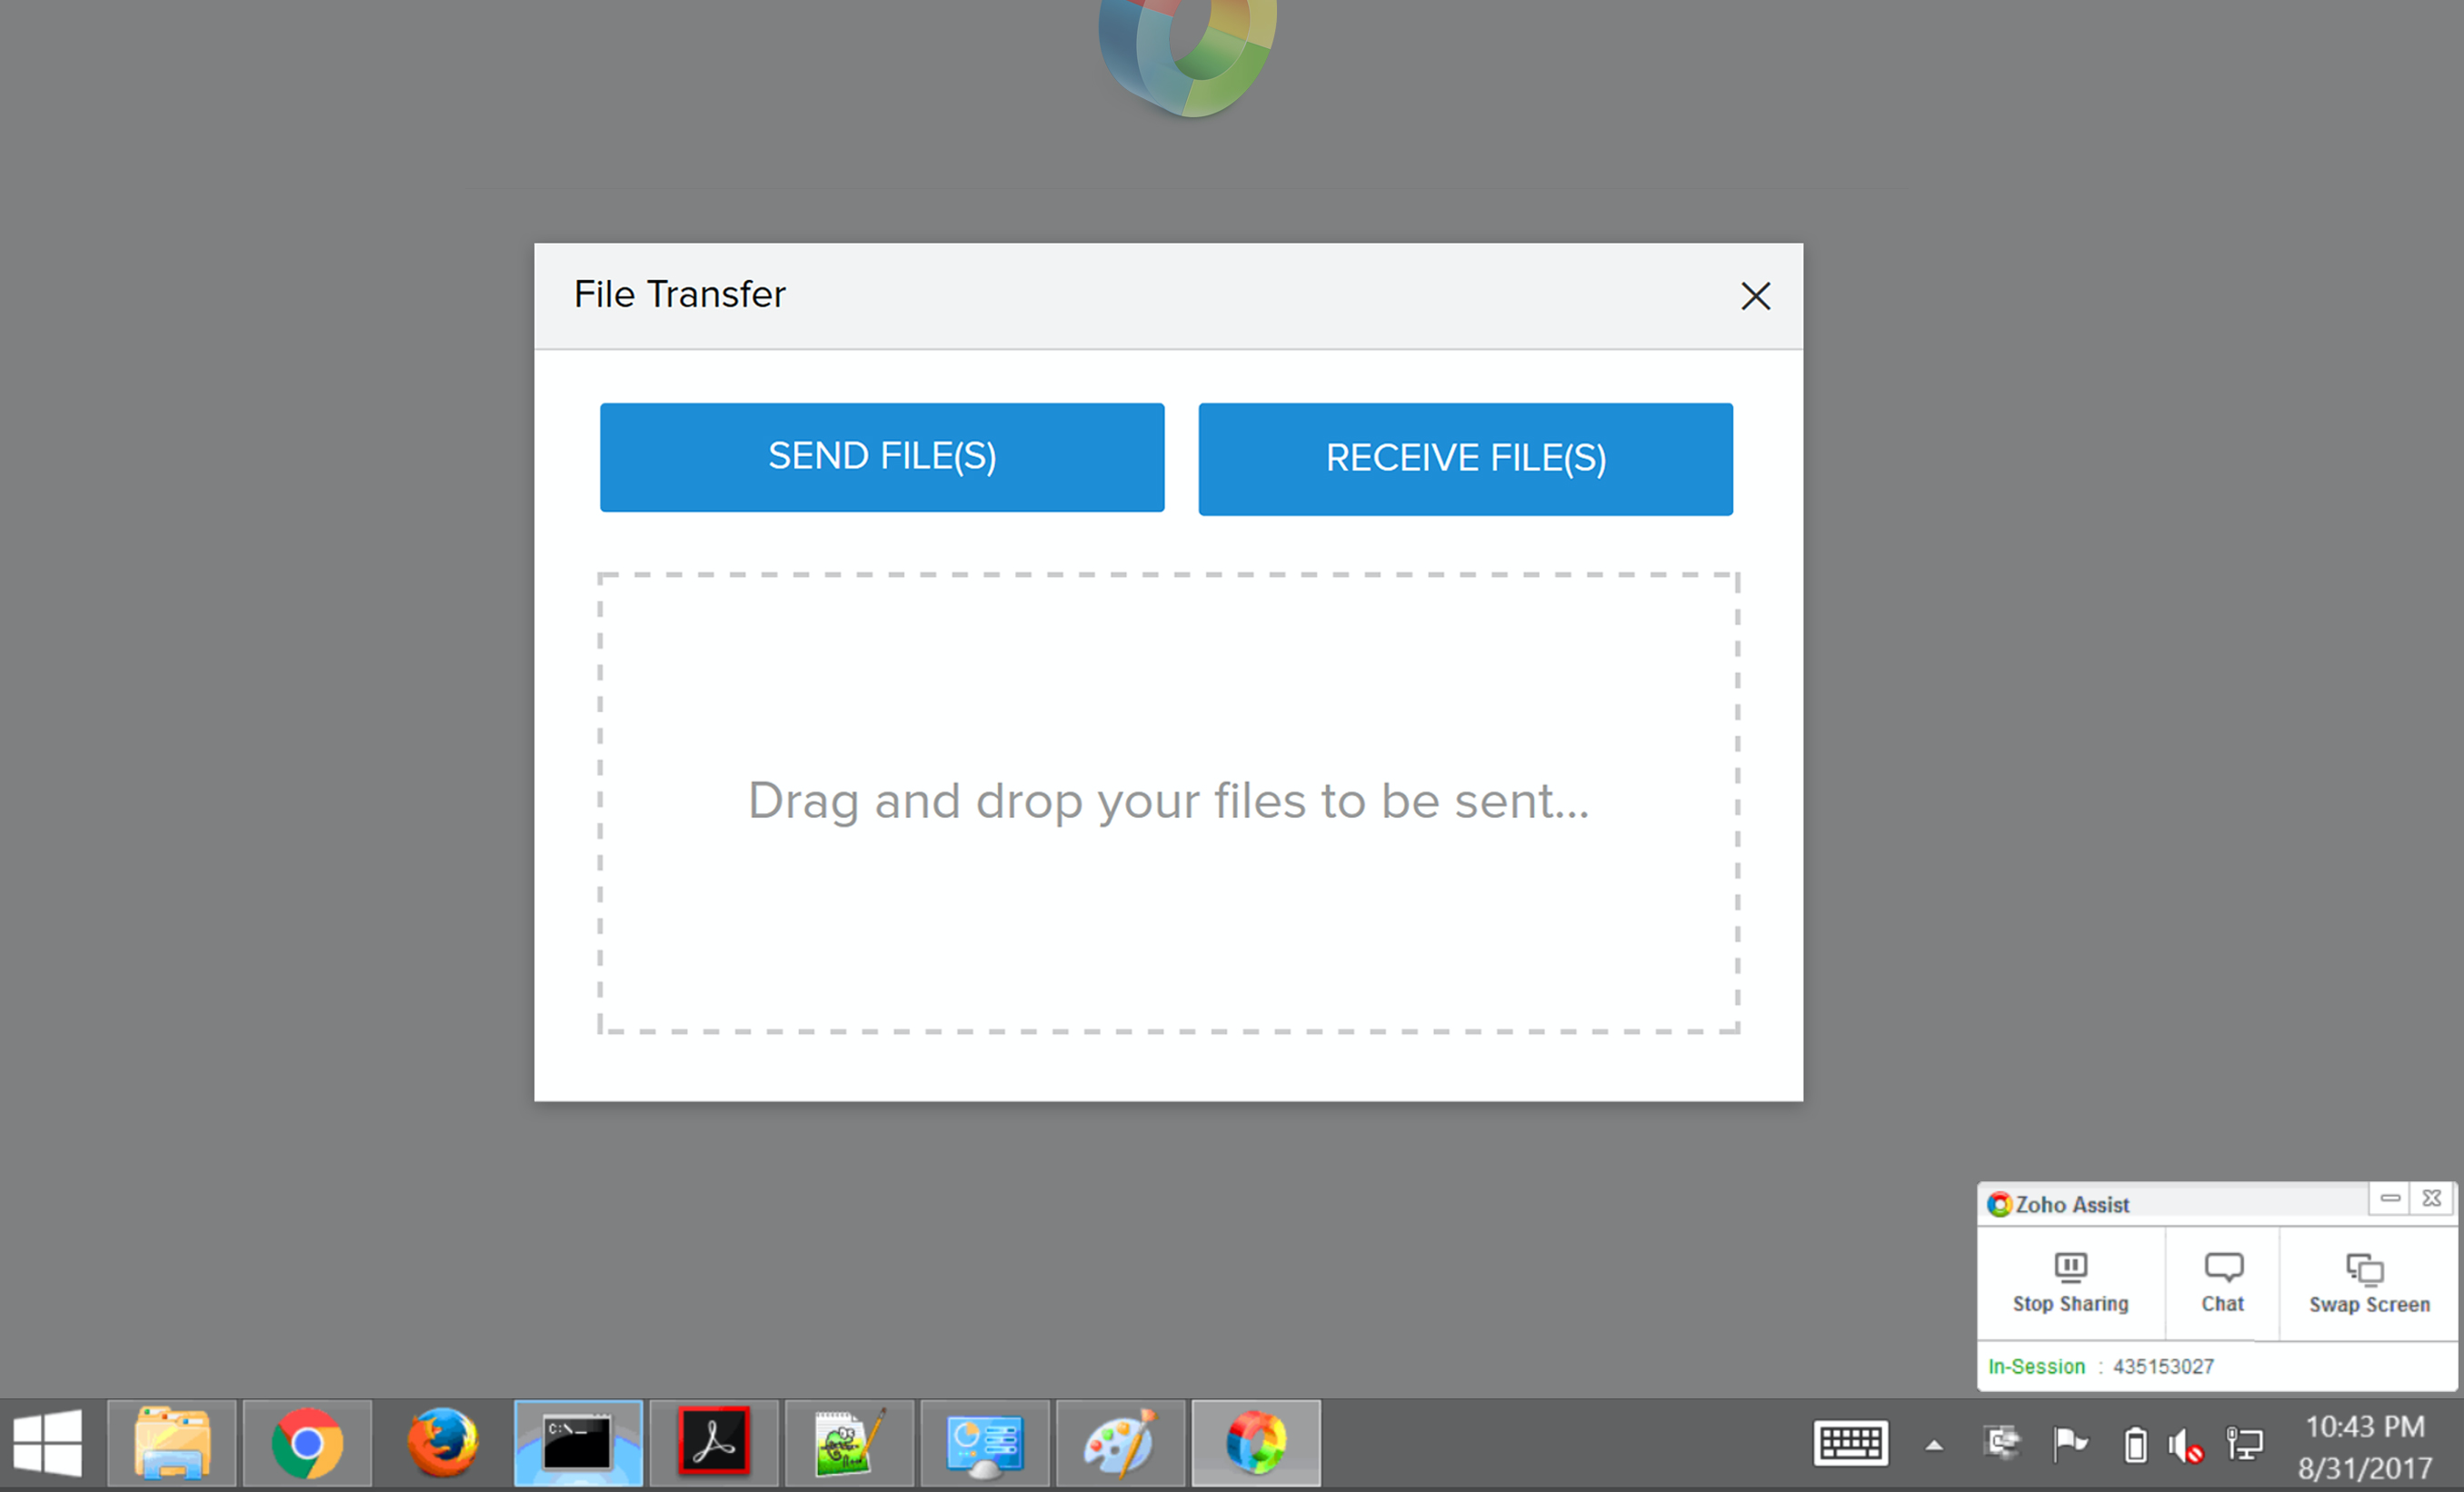 Transfer files instantly with in-built two-way file transfer